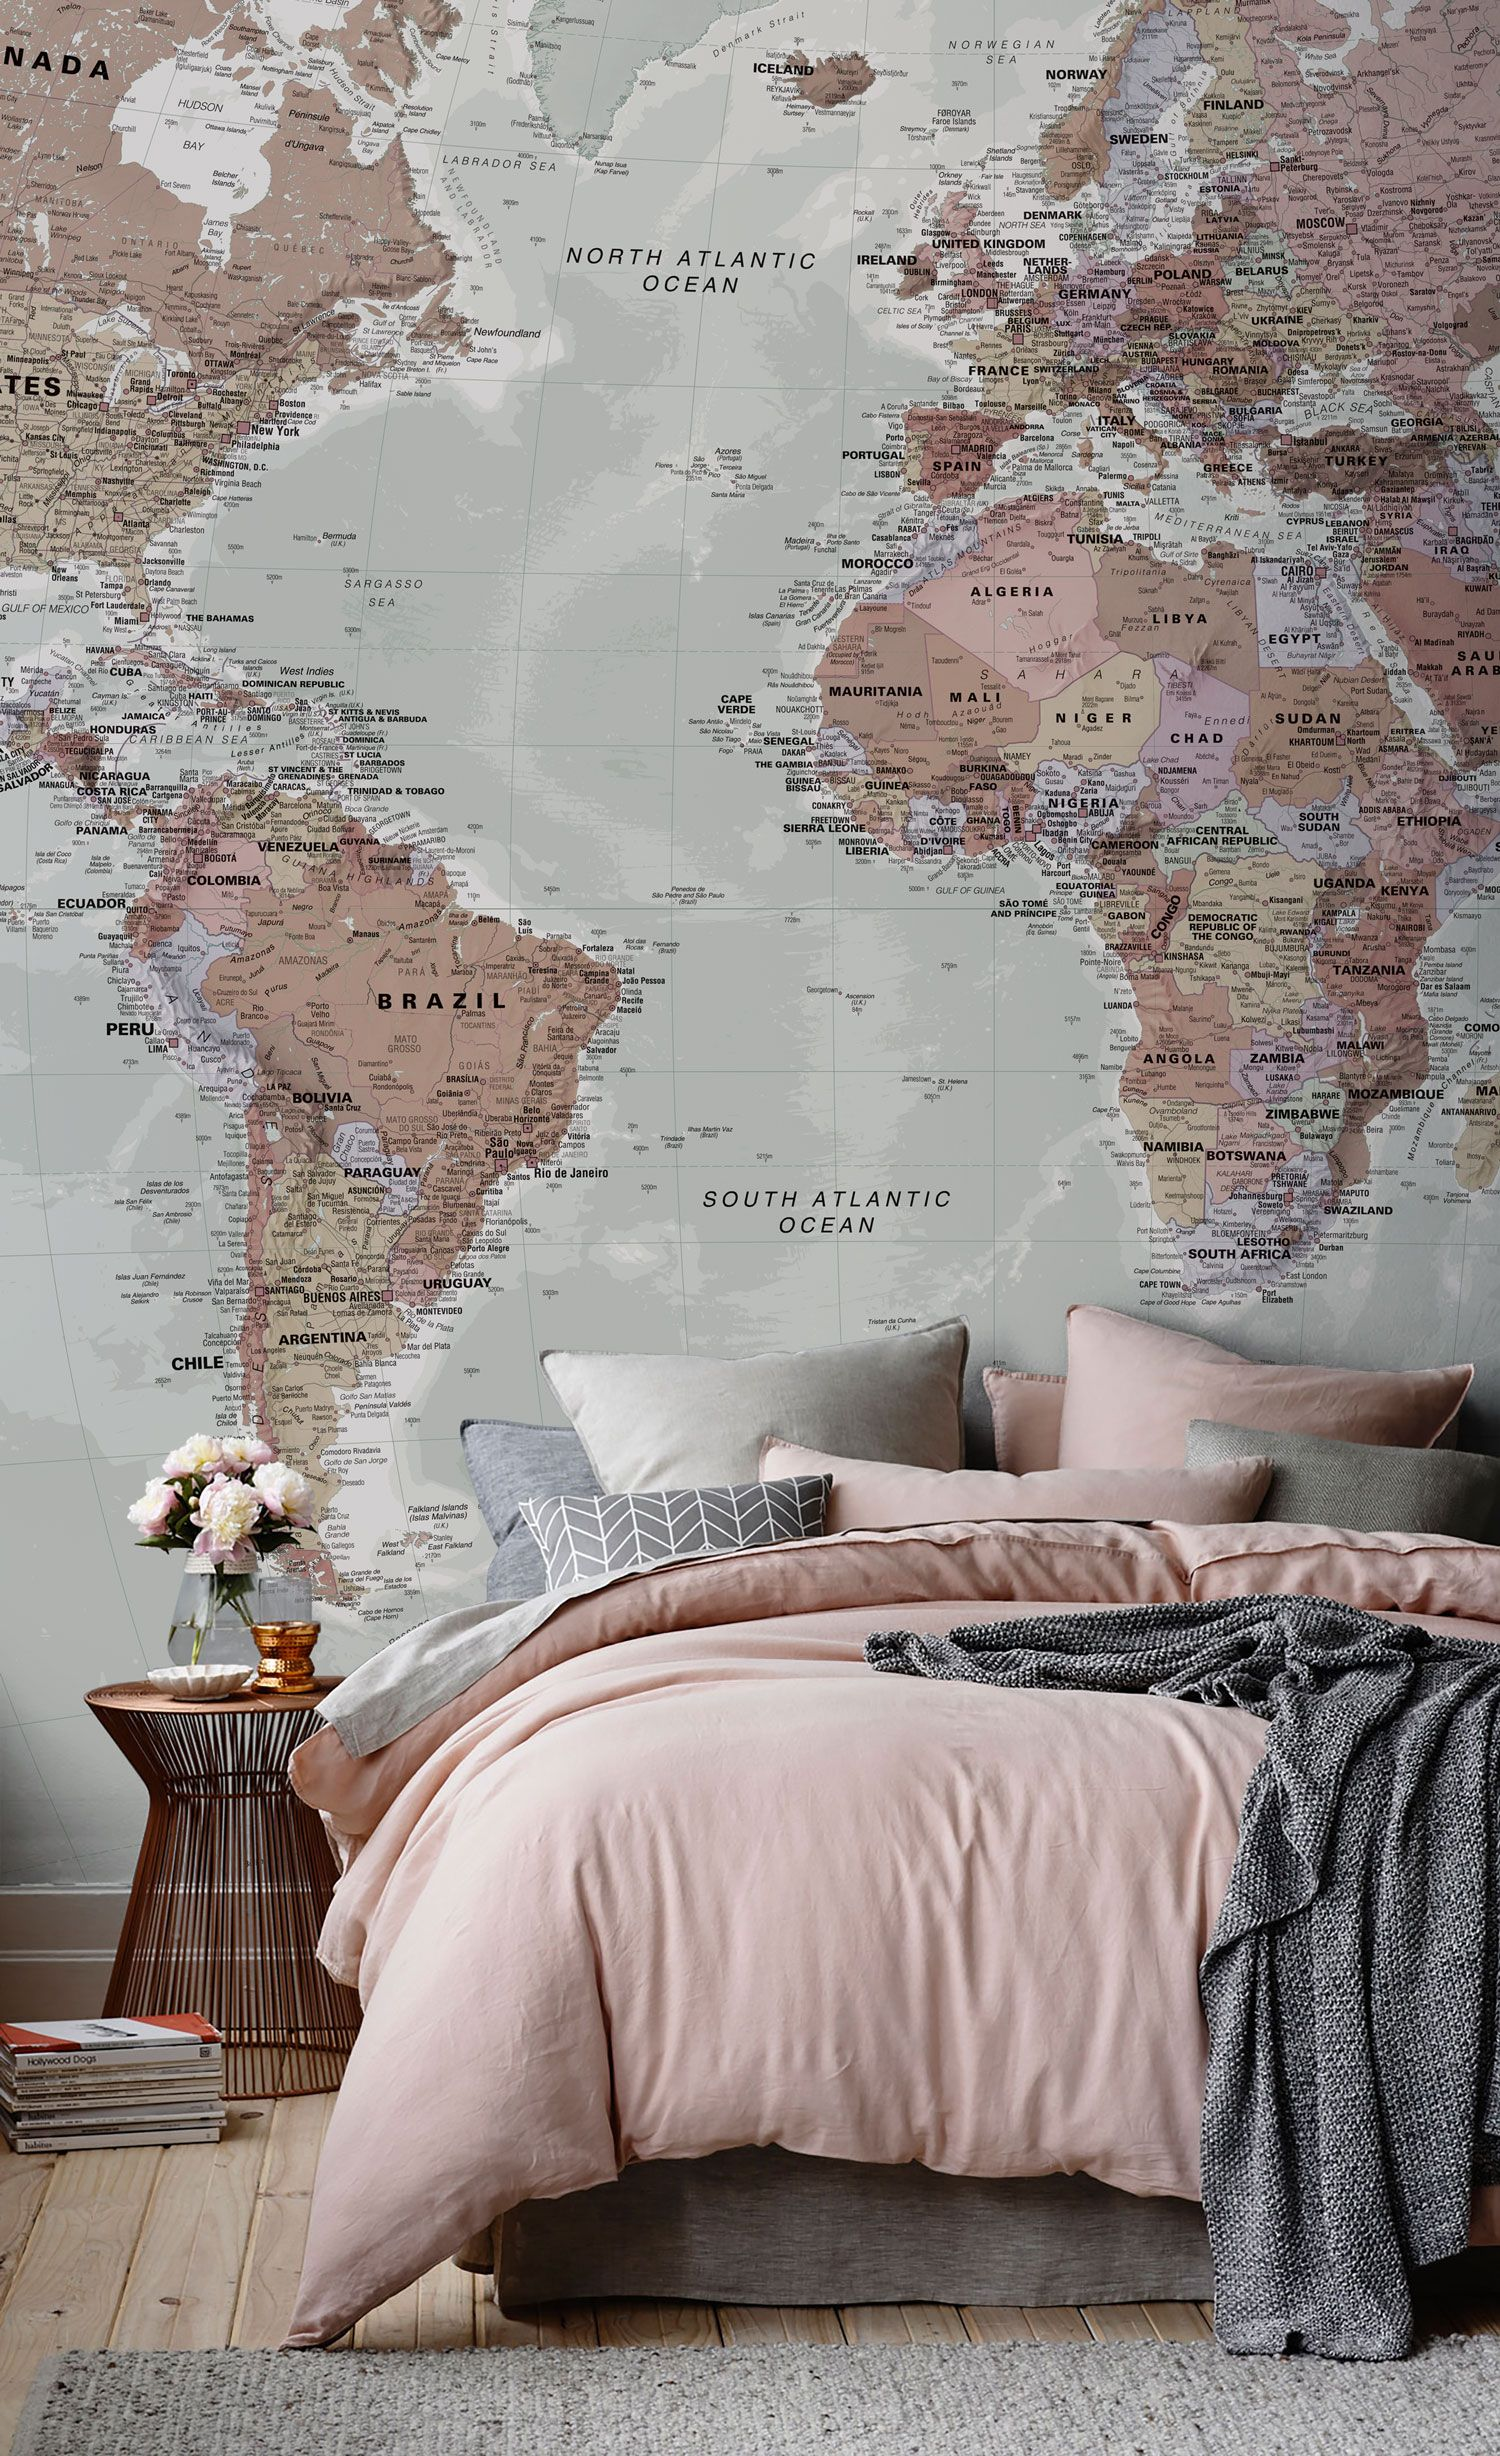 Classic world map wallpaper stylish map mural muralswallpaper wonderful muted colours come together to give the perfect balance of feminine decor and modern chic combined with this beautiful world map wallpaper gumiabroncs Gallery